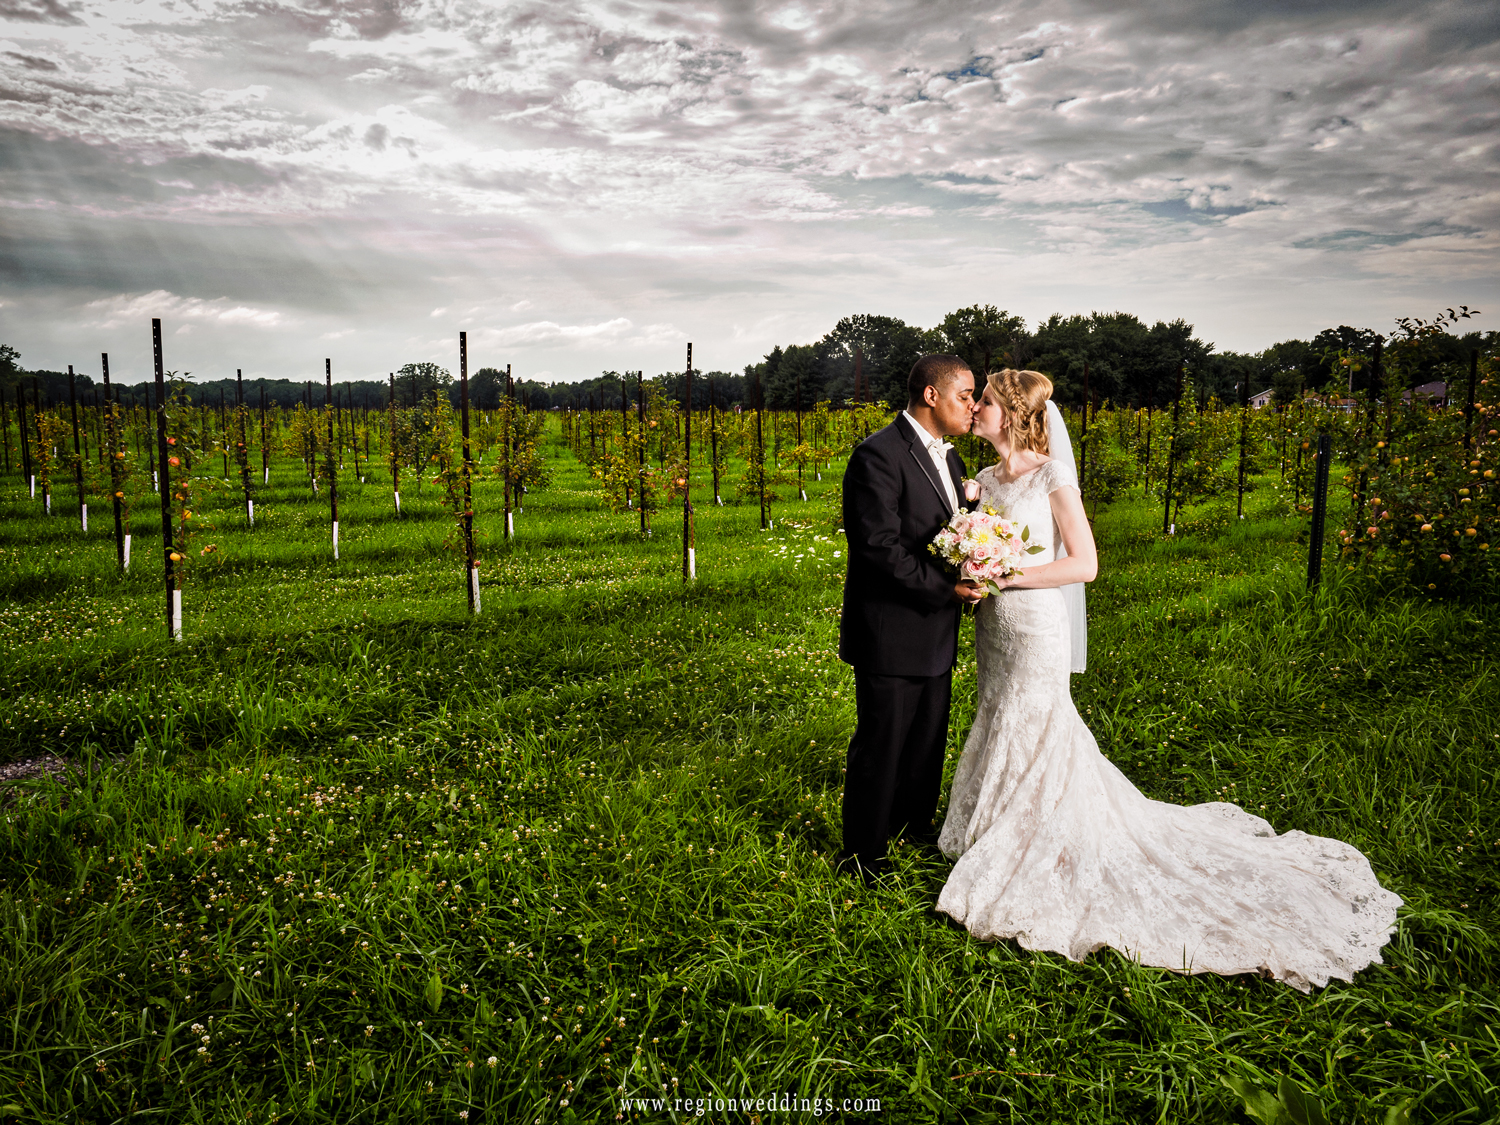 A newly married couple kisses in the apple fields of County Line Orchard in Hobart, Indiana.